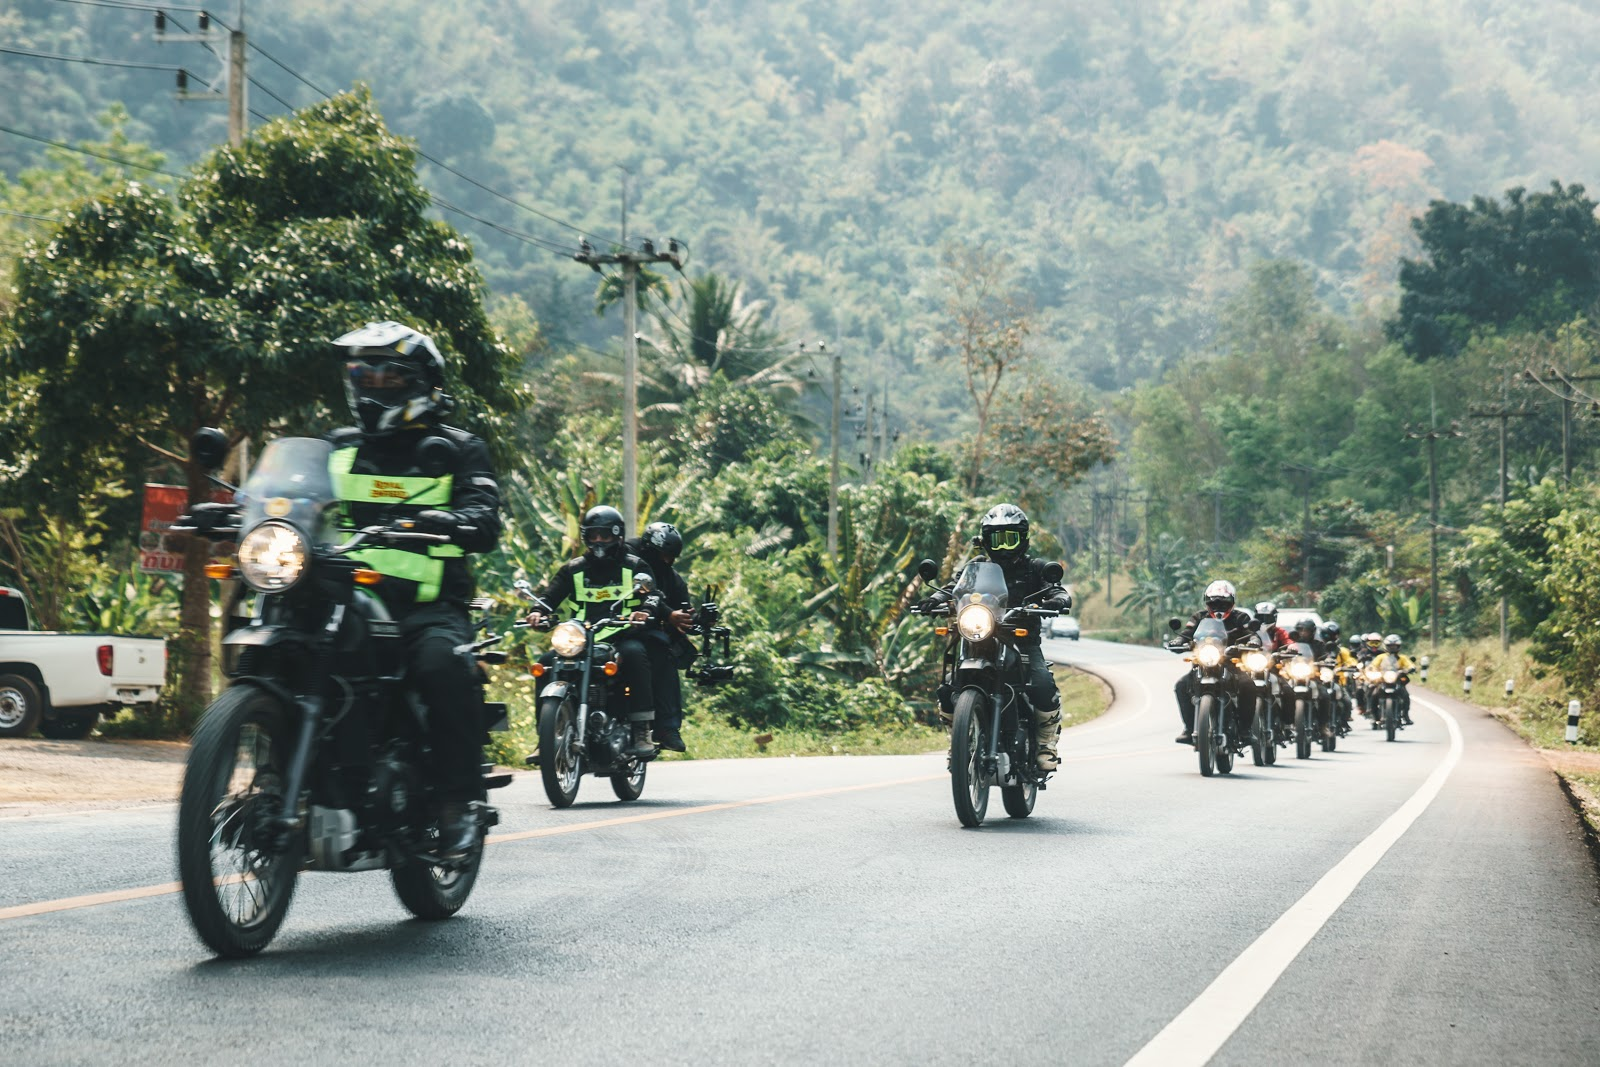 A group of riders touring Vietnam